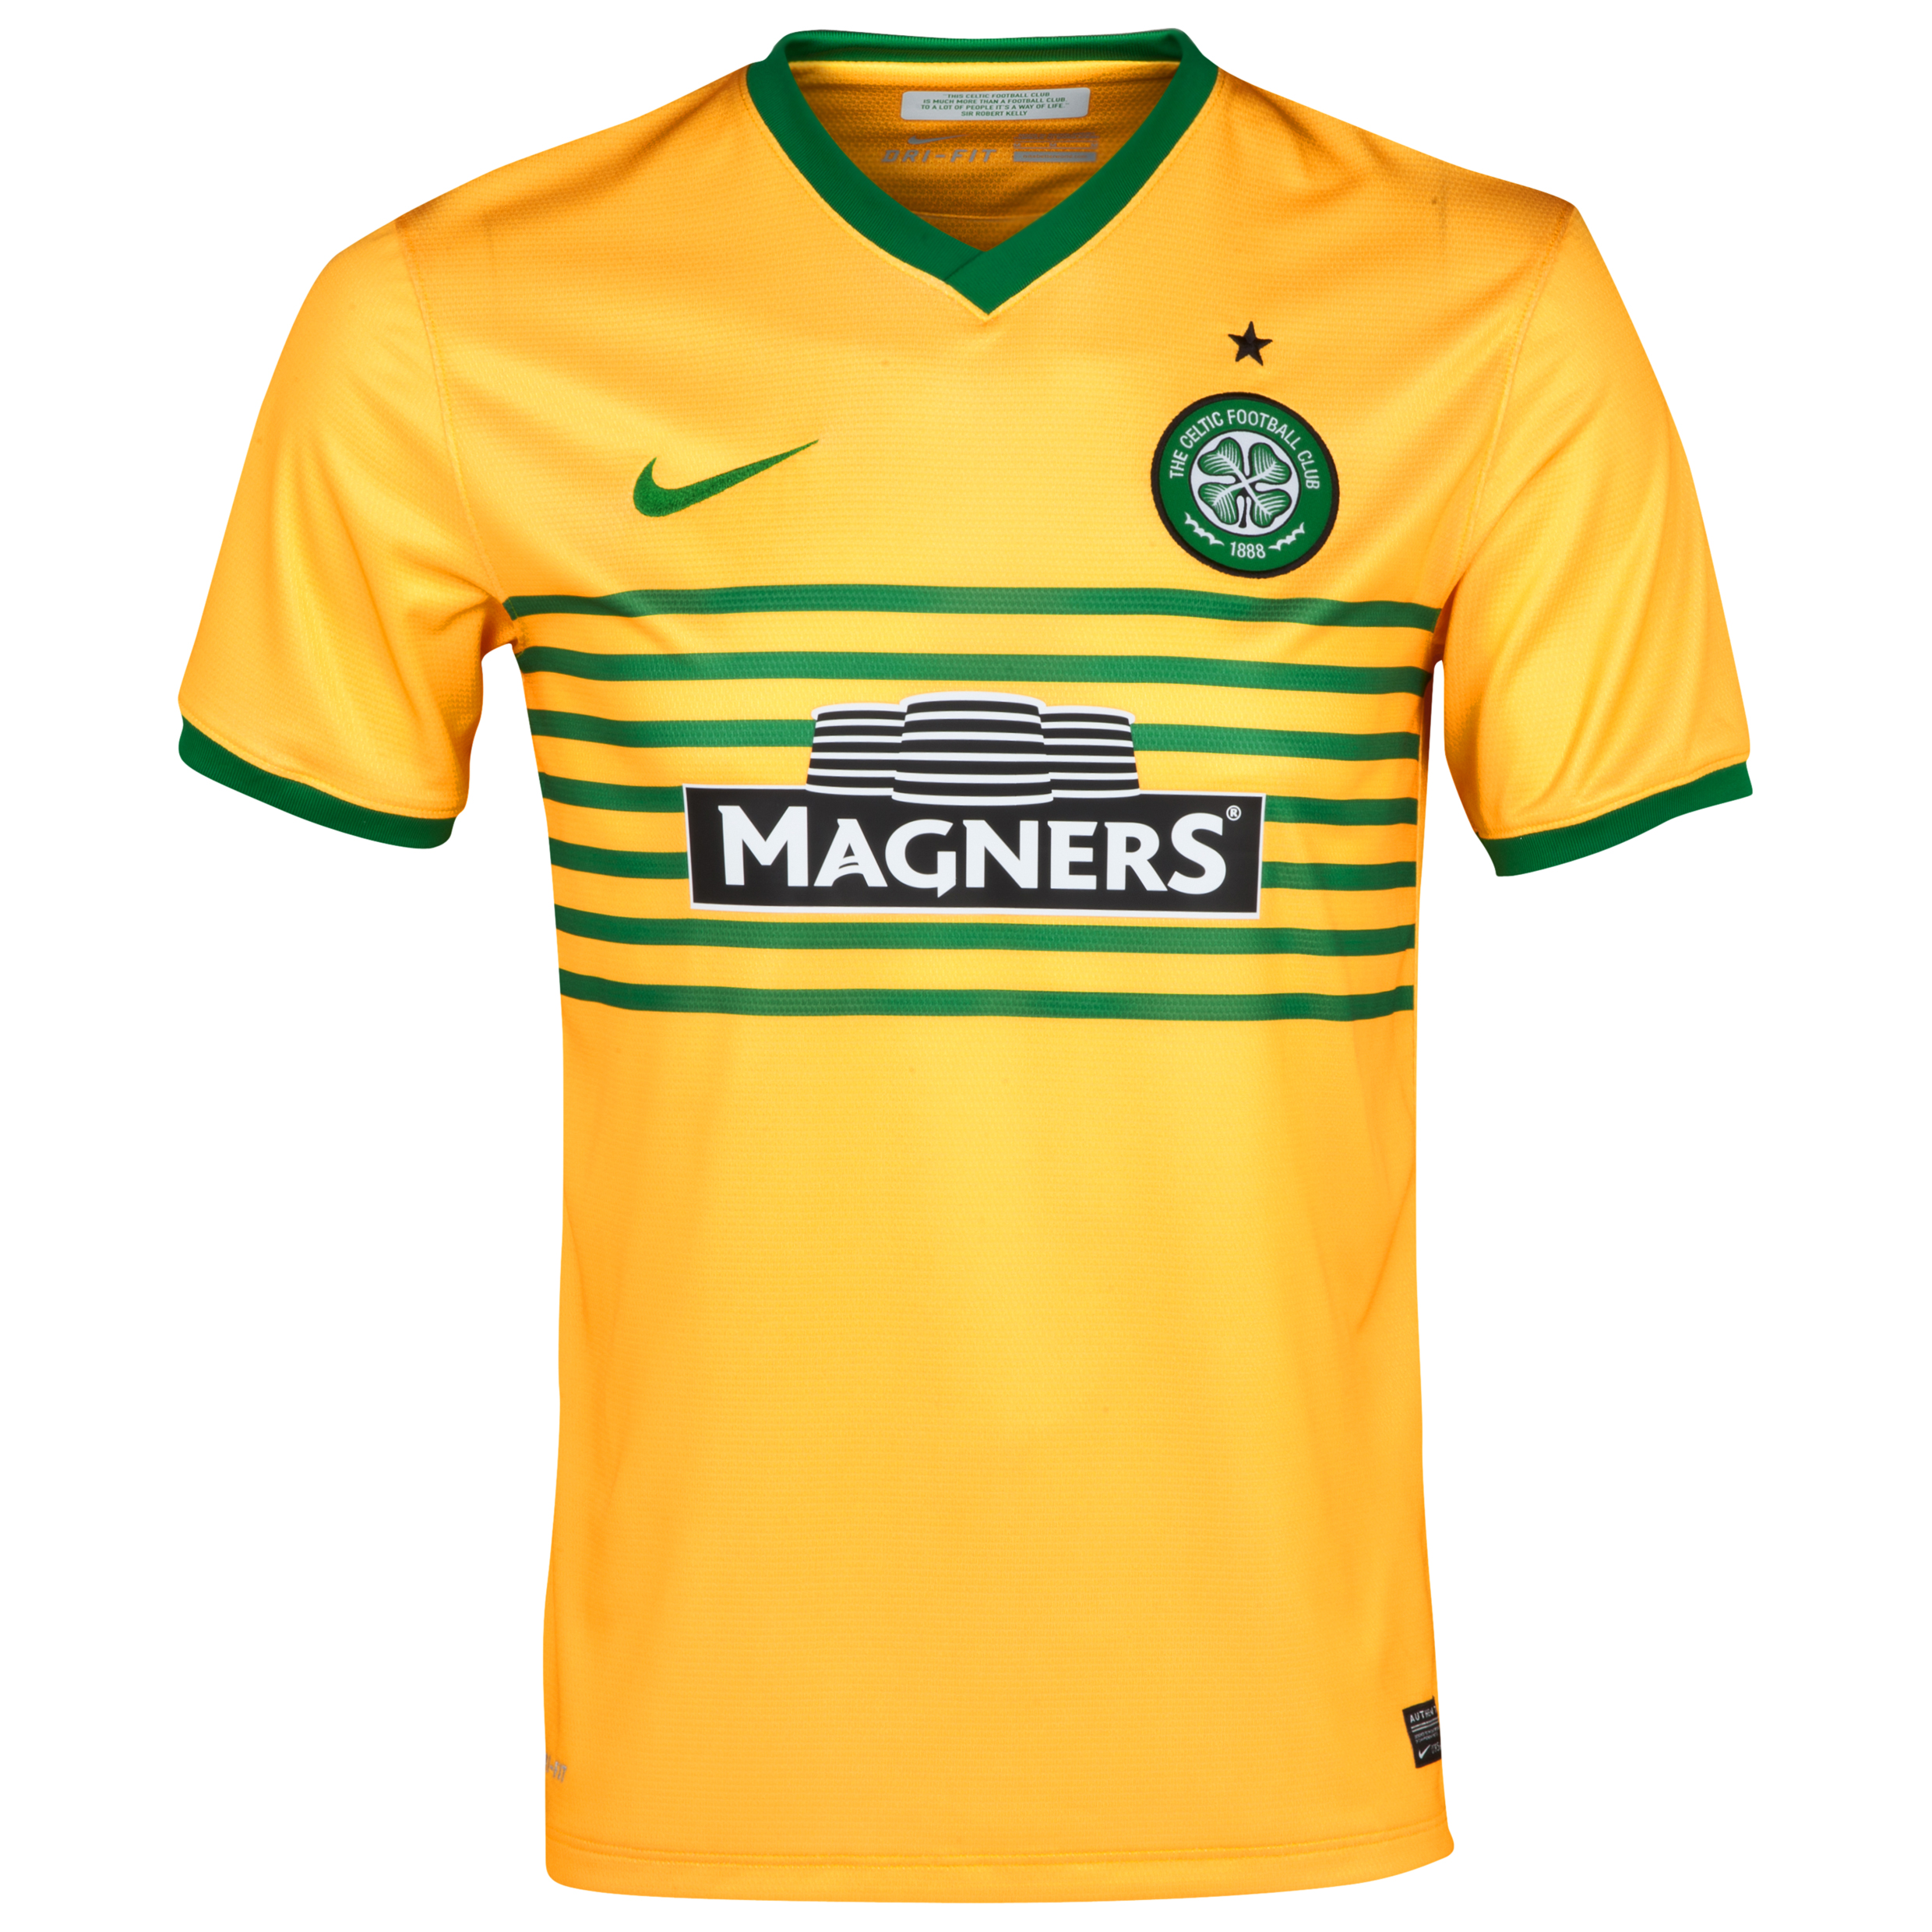 2013/14 Away Kit From £28.56